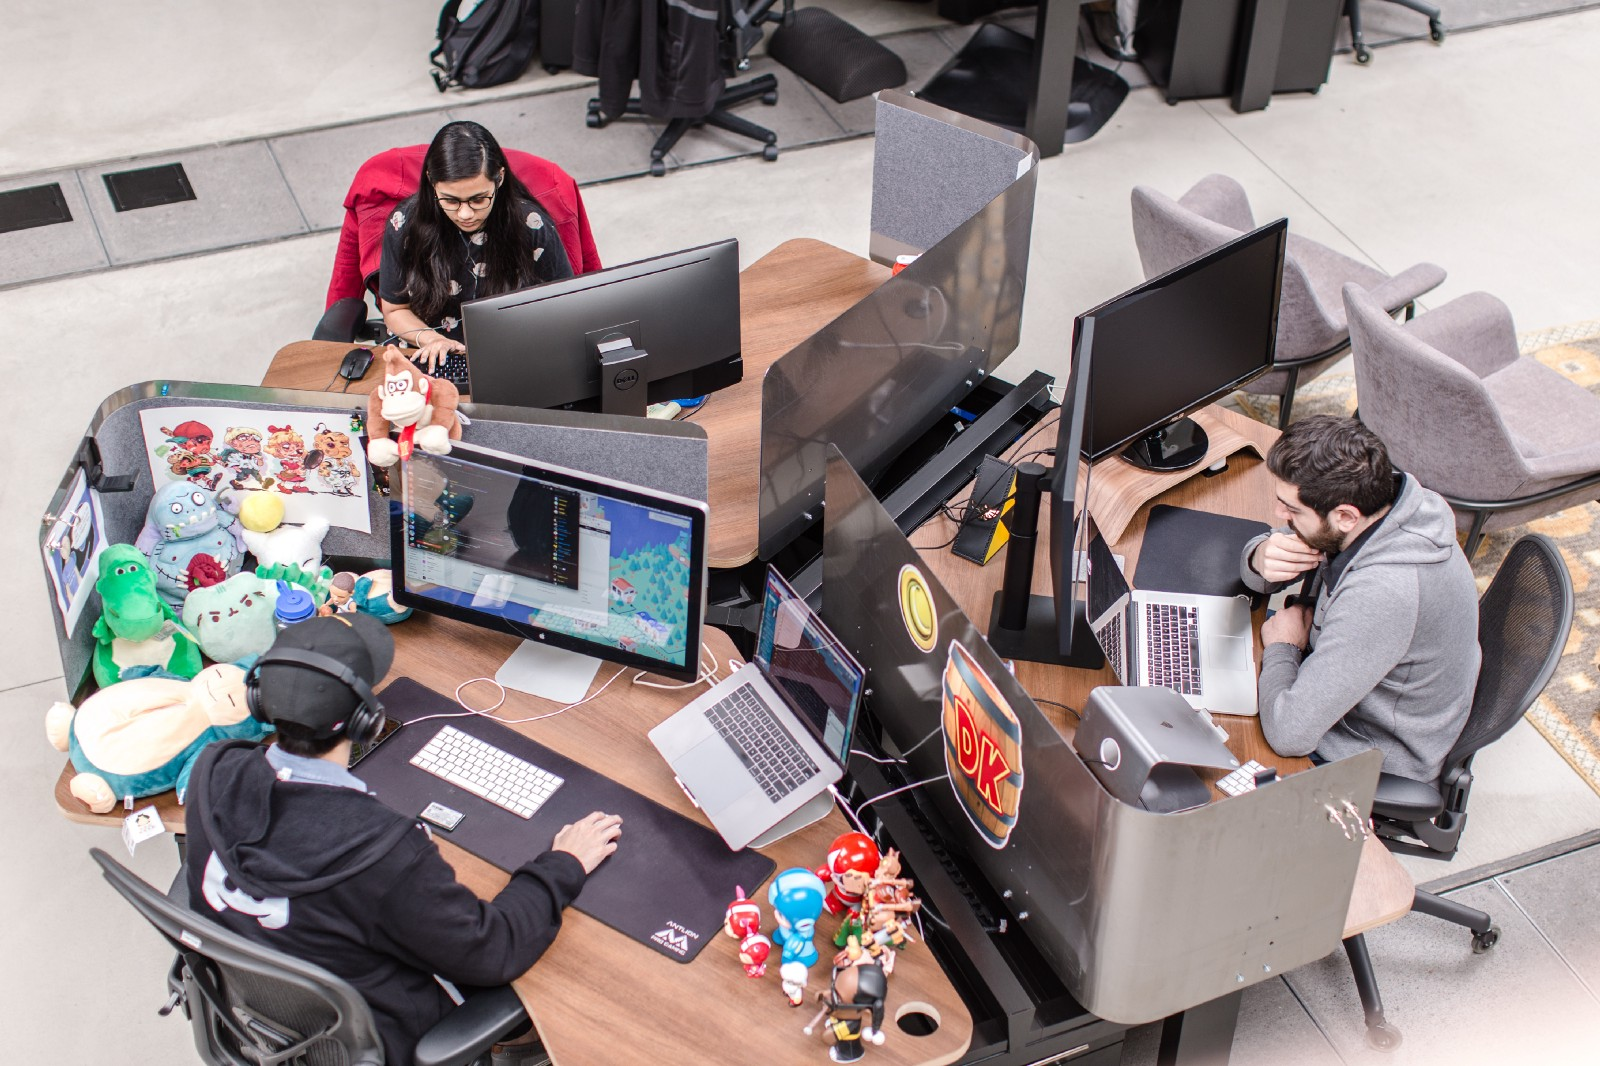 The Four Values Of Working At Discord Discord Blog - Video game designer working conditions